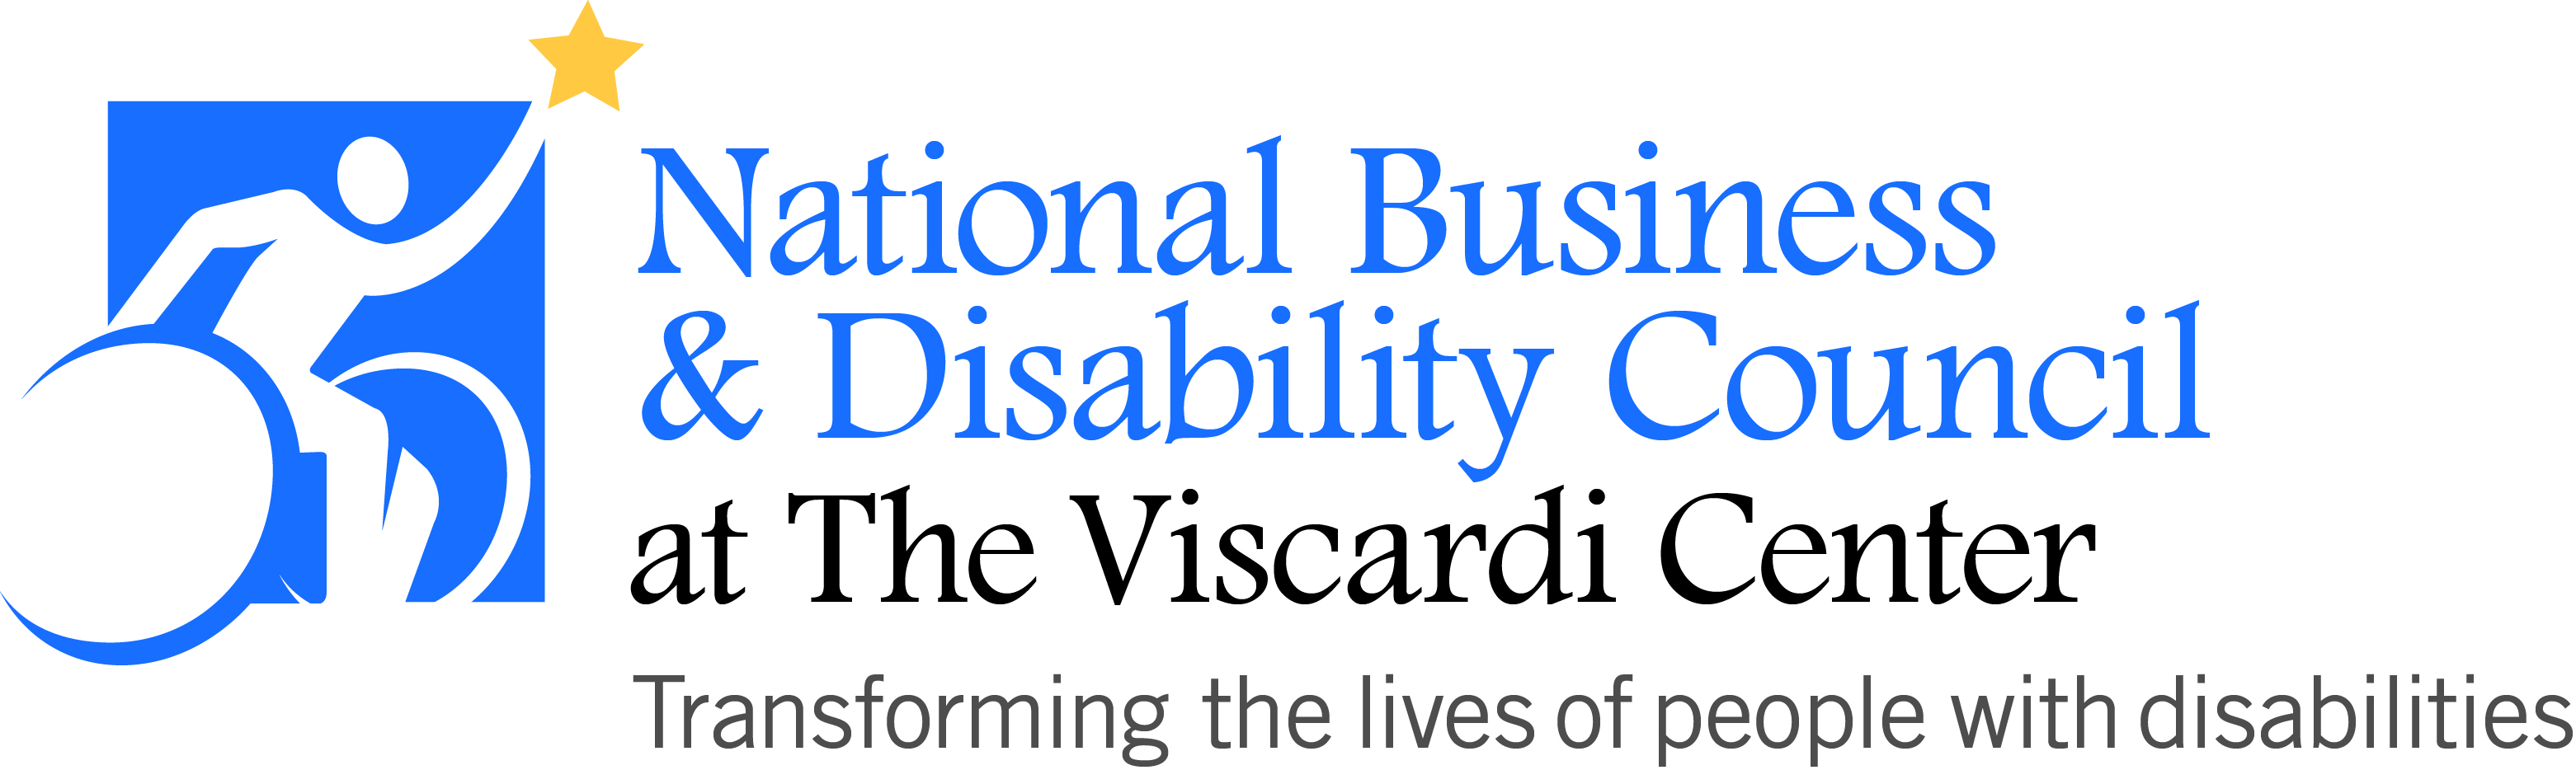 Logo: National Business & Disability Council - transforming the lives of people with disabilities